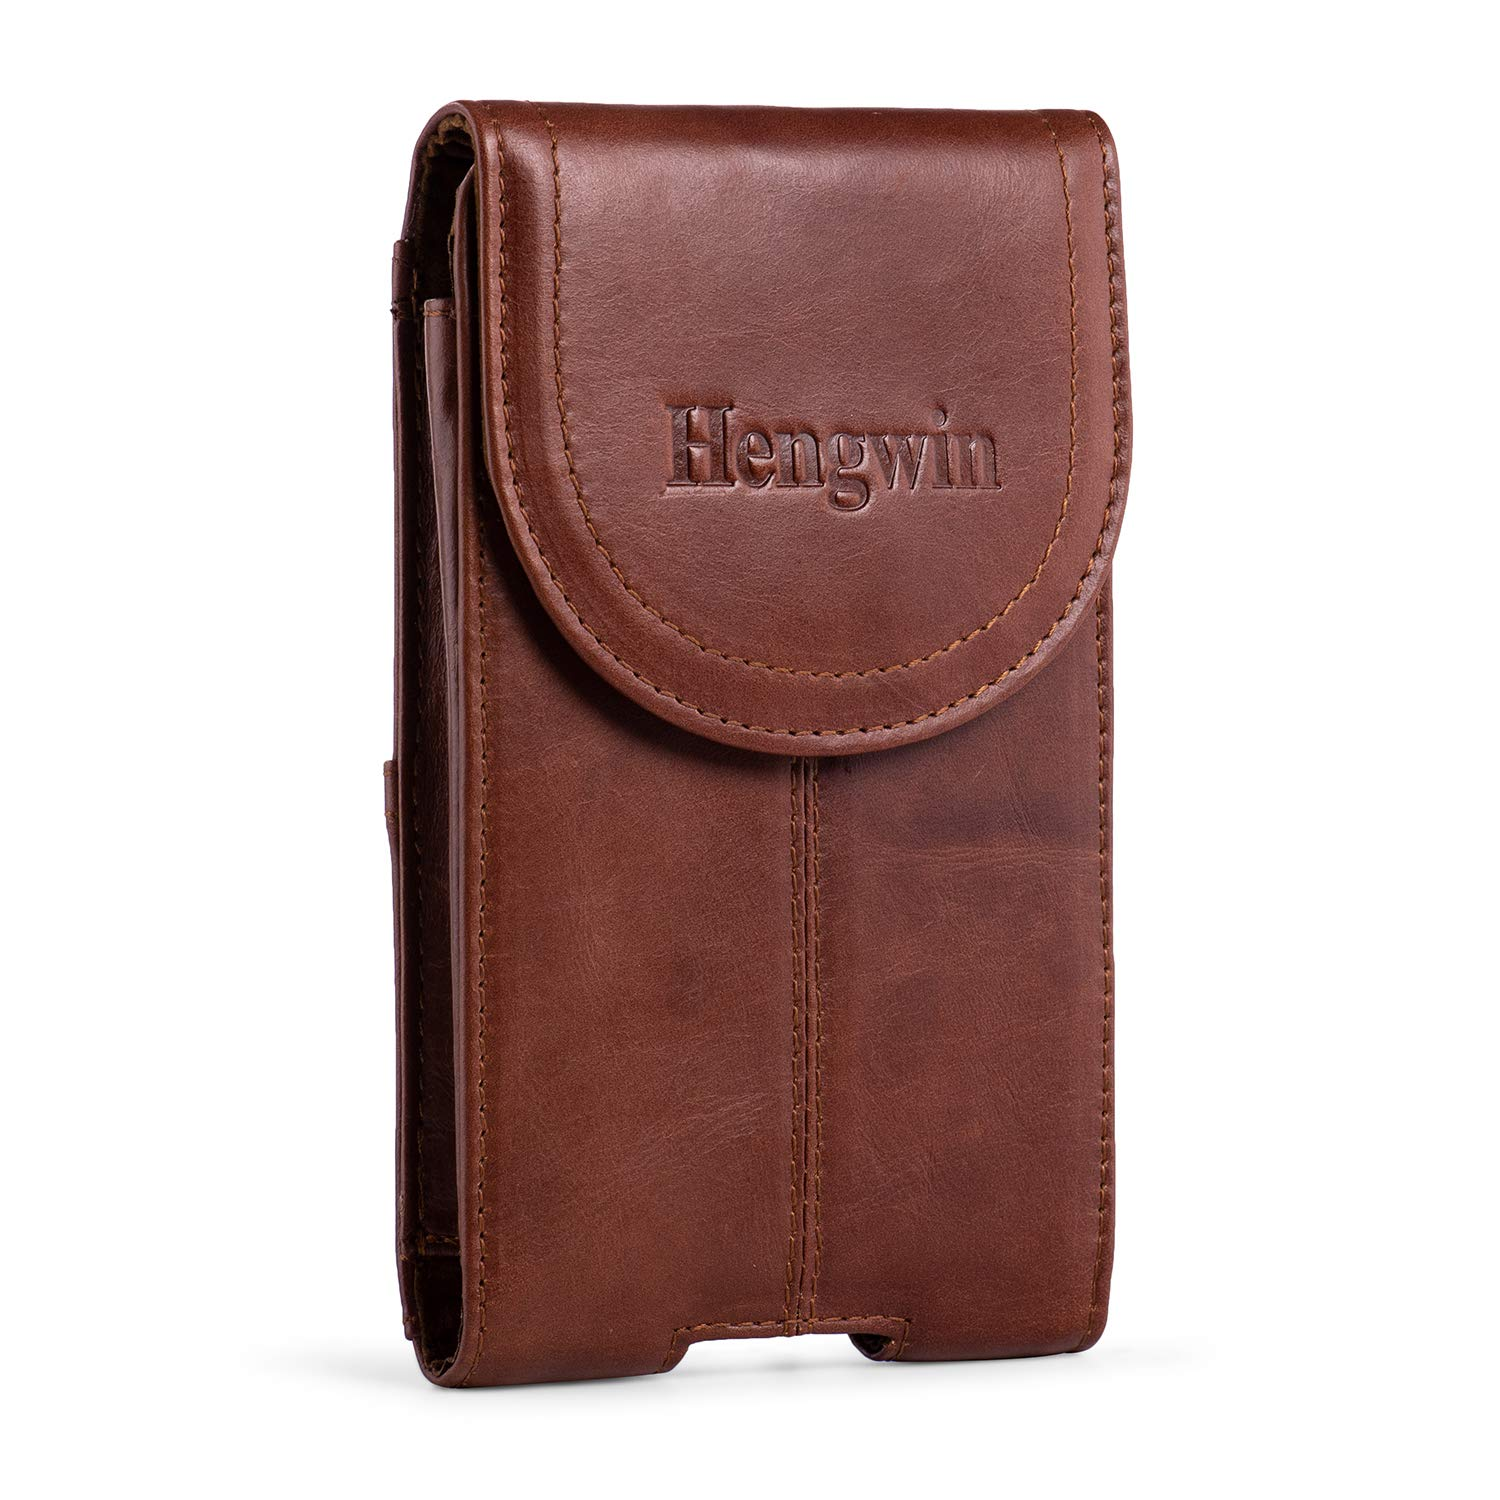 Belt Clip Holster Pouch Hengwin Genuine Leather Phone Case Holster with Magnetic Closure Purse Belt Loop Pouch Bag Compatible for iPhone XR 7 8 Plus Samsung S8 Plus +Keyring(Brown) by Hengwin